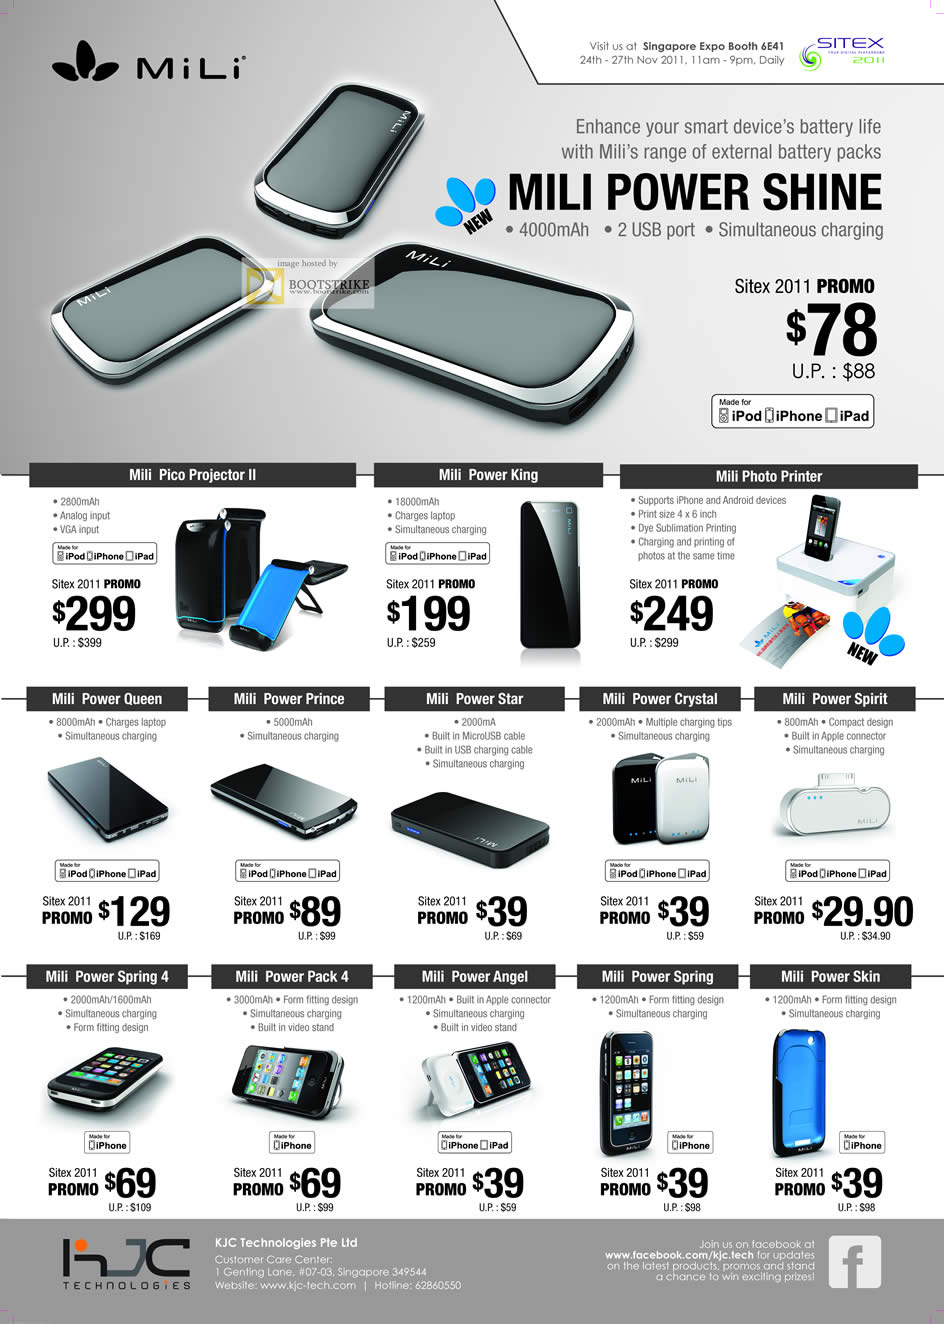 SITEX 2011 price list image brochure of KJC MiLi Power Shine Portable Charger, Pico Projector II, King, Photo Printer, Power Queen, Prince, Star, Crystal, Spirit, Spring 4, Pack 4, Angel, Spring, Skin, IPhone